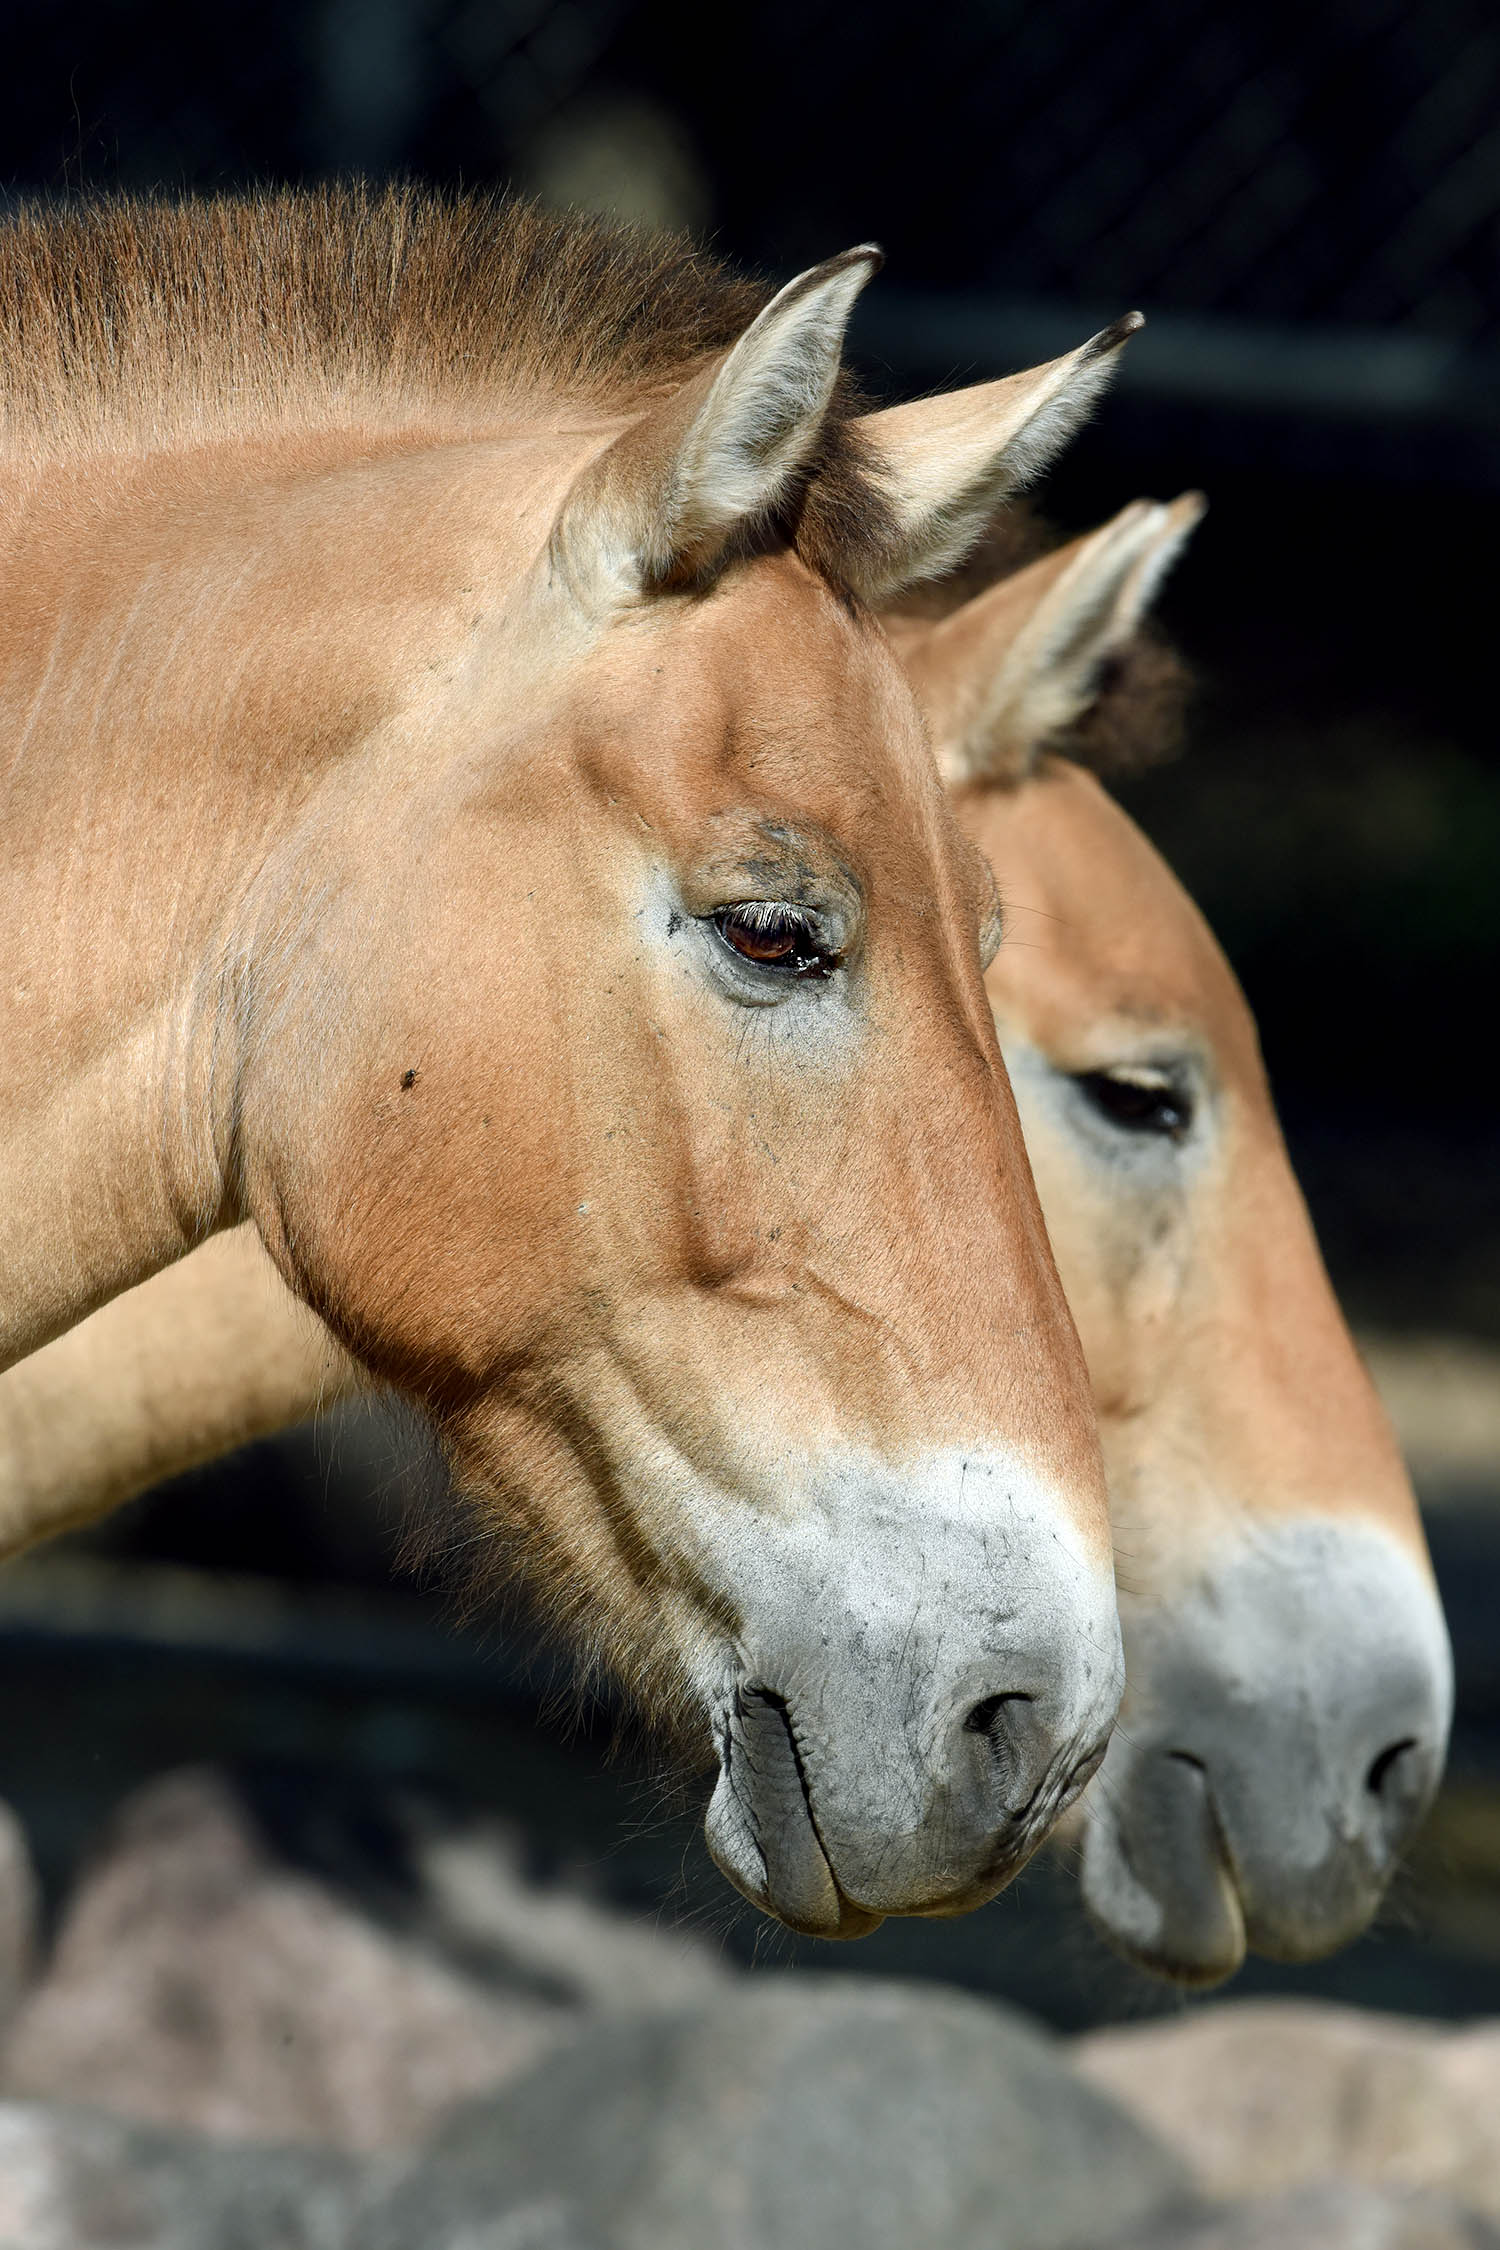 Przewalski's Horse is thought to be the 'original' horse species. A trio of mares are on display at Brookfield Zoo (photo courtesy of the Chicago Zoological Society/Brookfield Zoo)